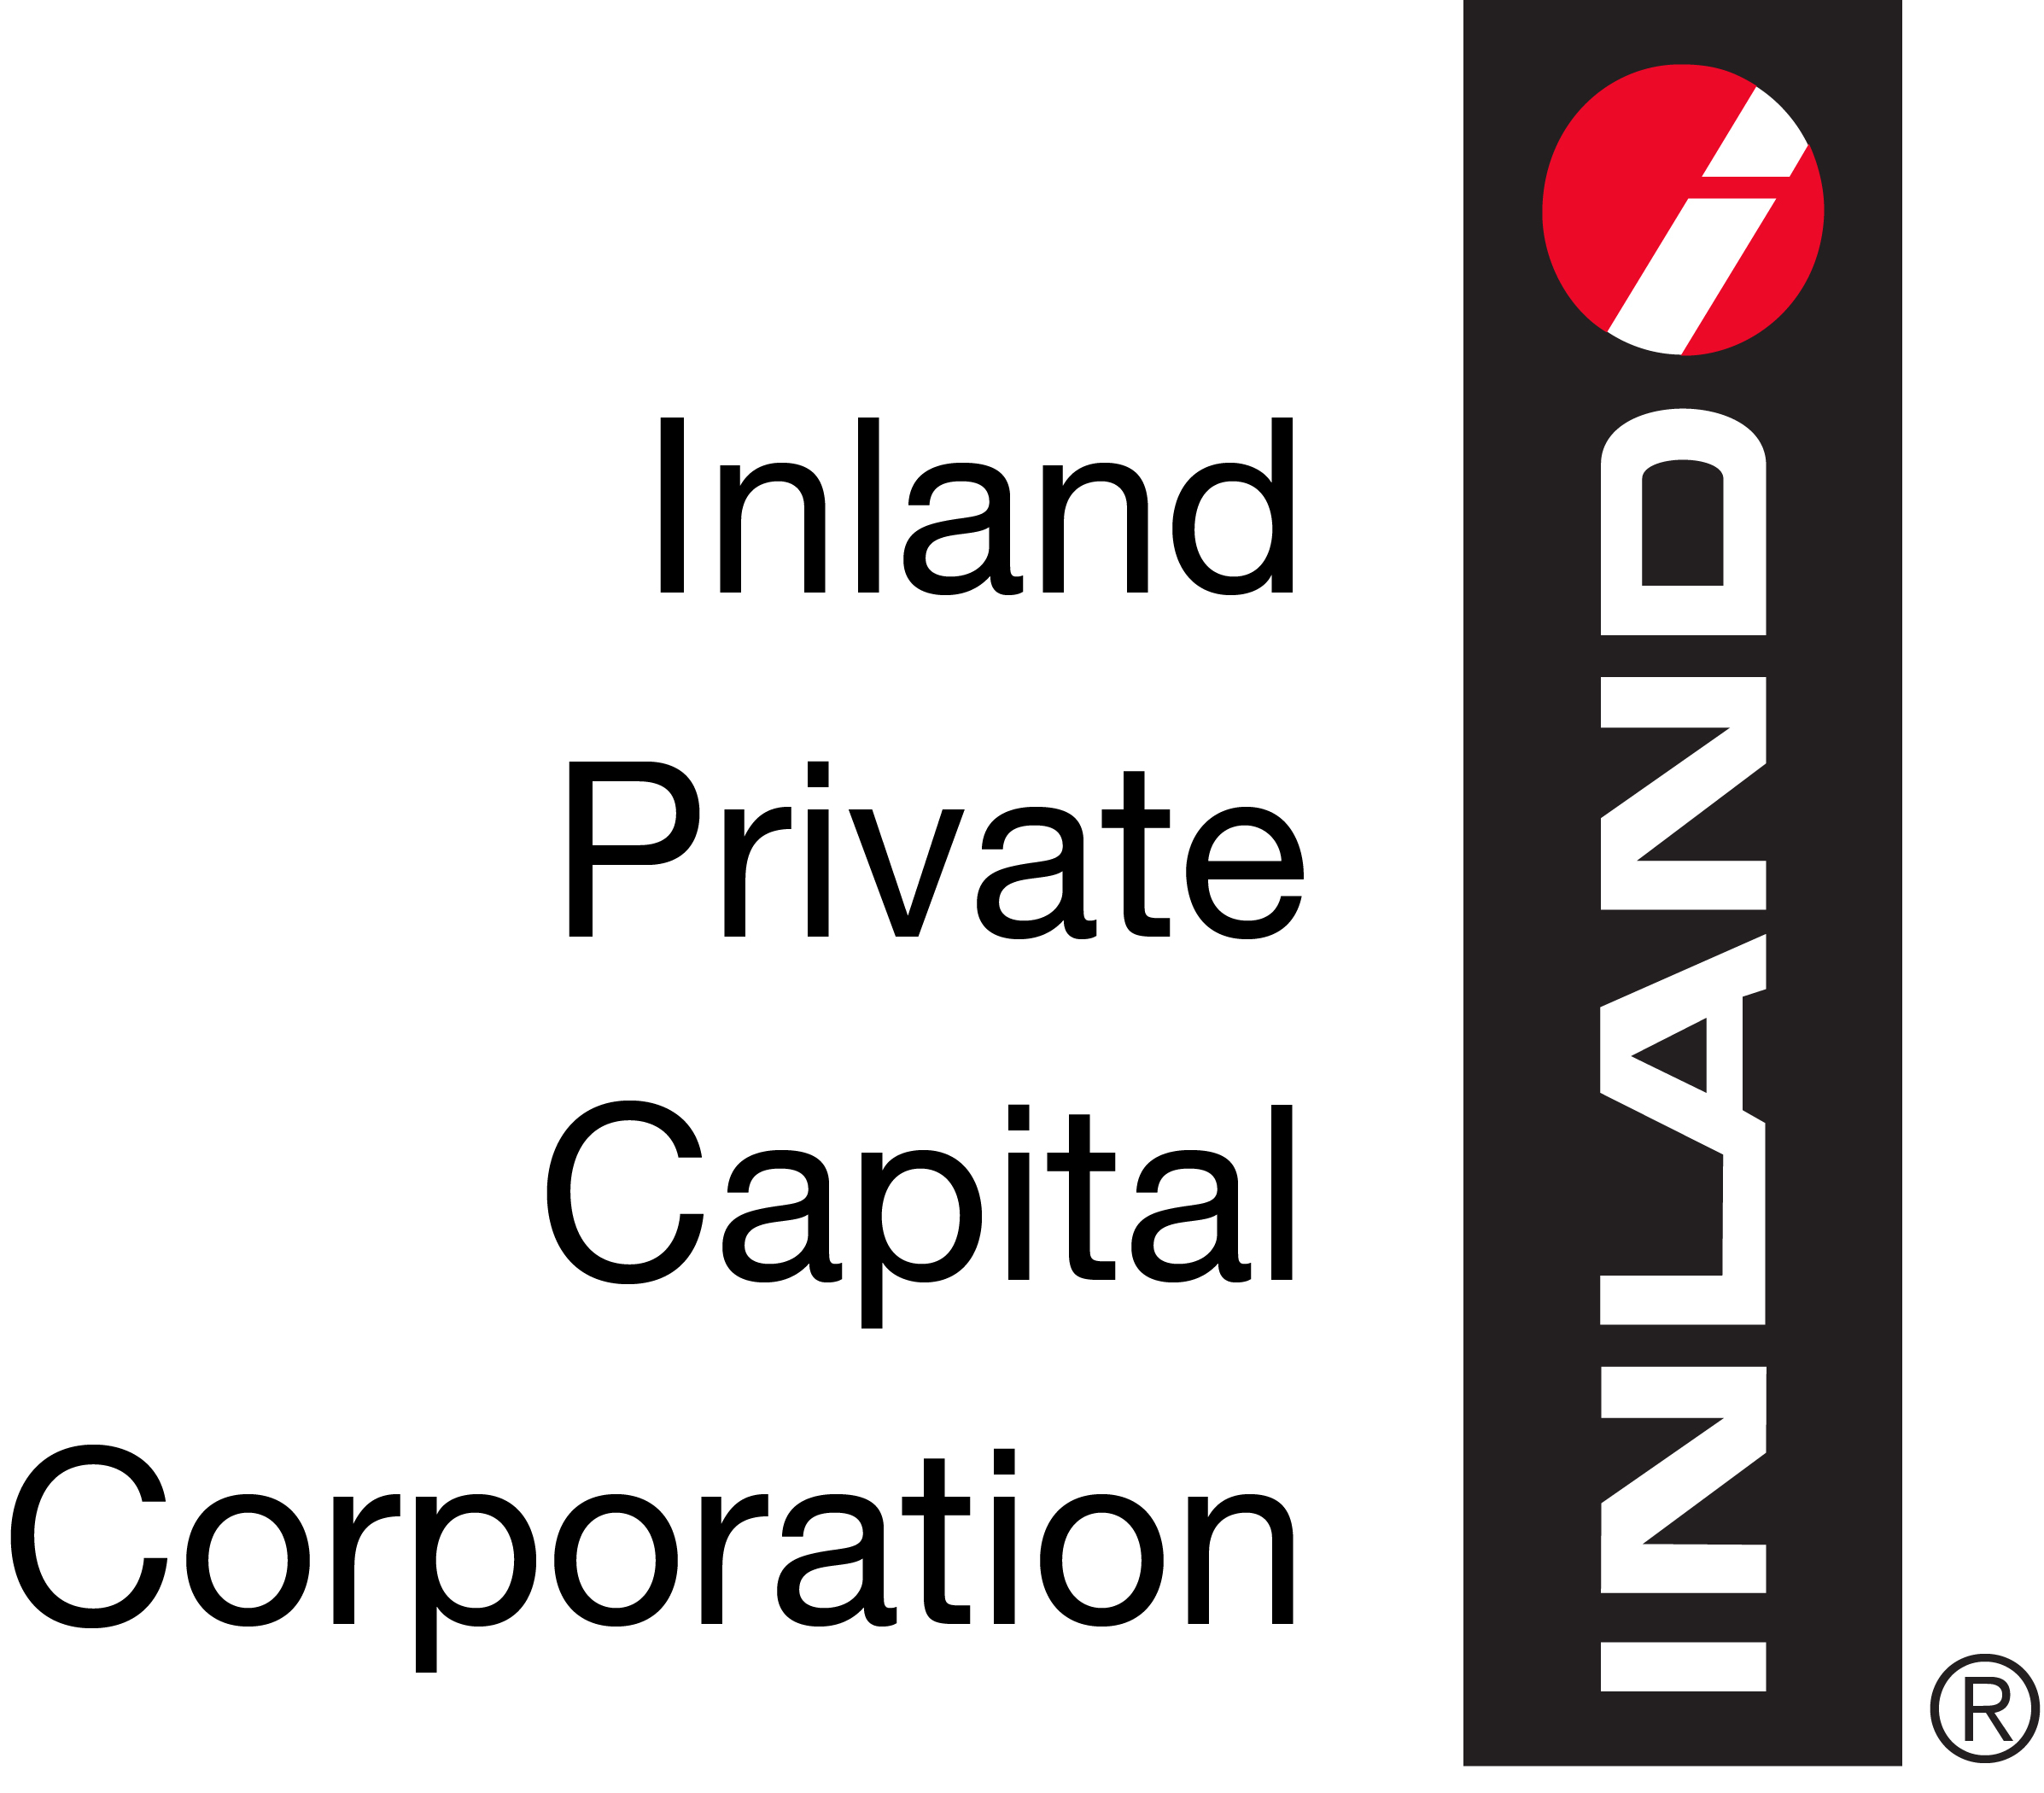 inland private capital corporation Inland Private Capital Corporation Announces the Profitable Sale of ...